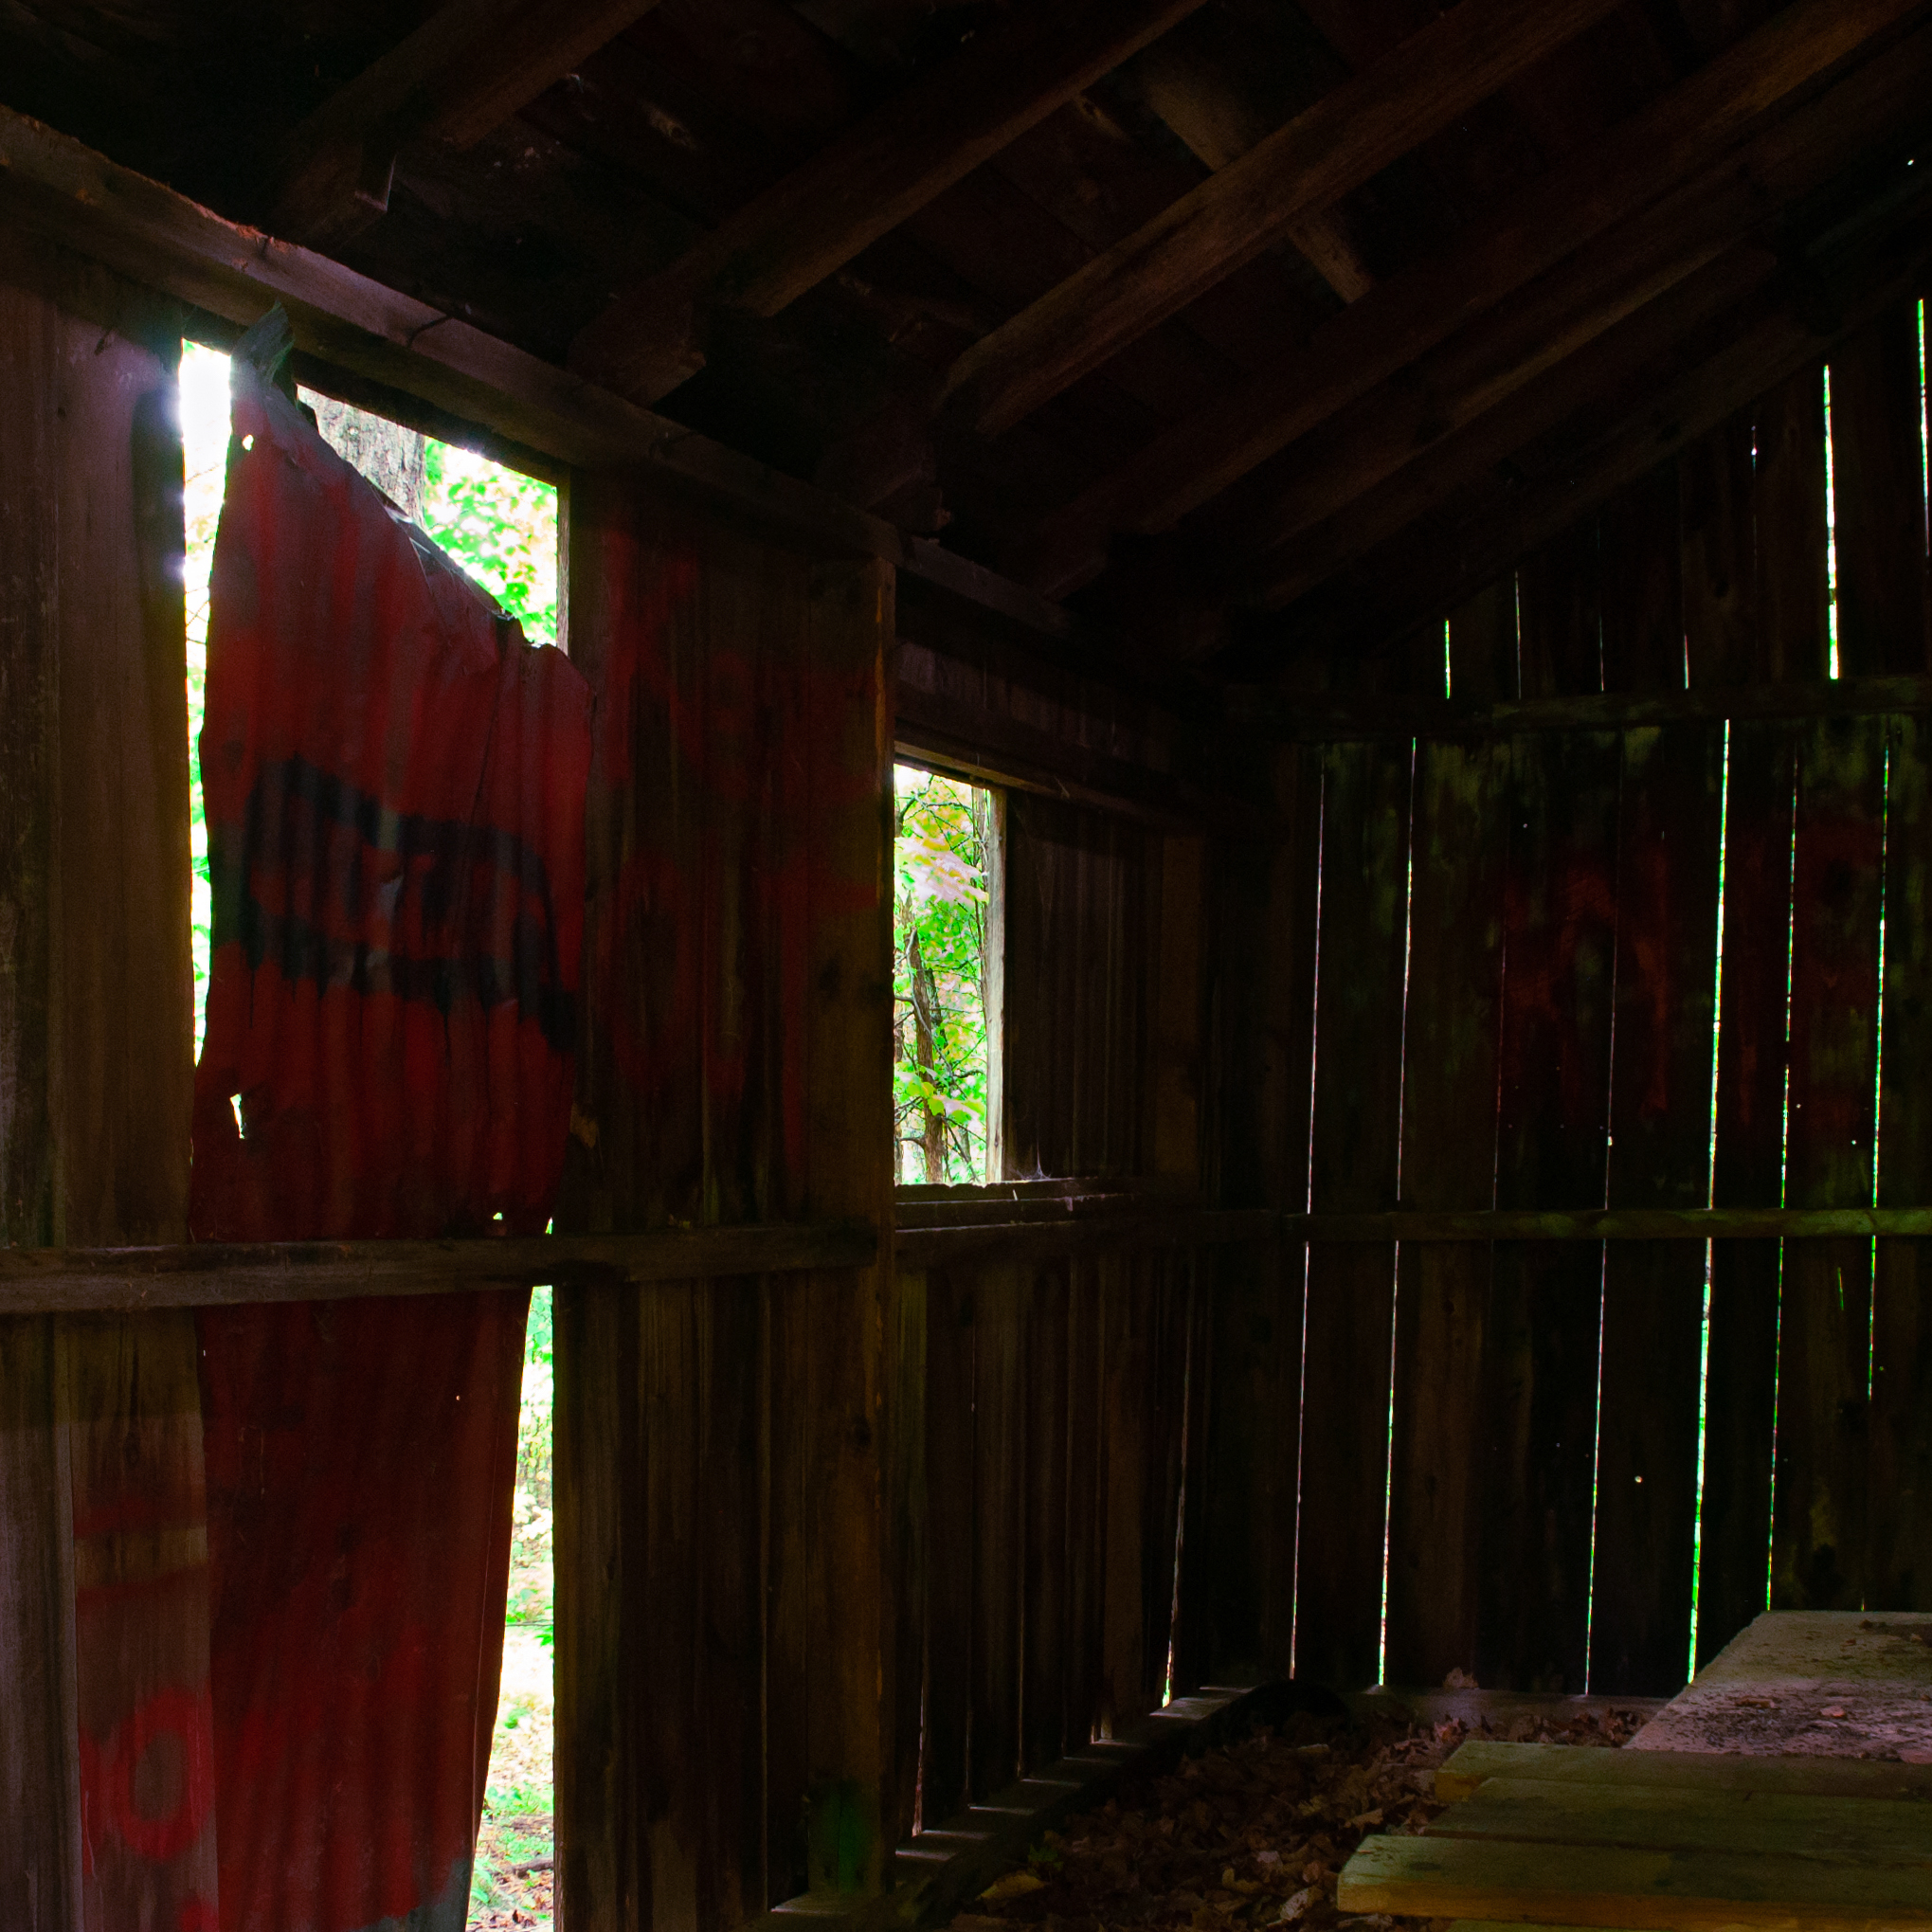 old barn where forest shows through gaps in the boards